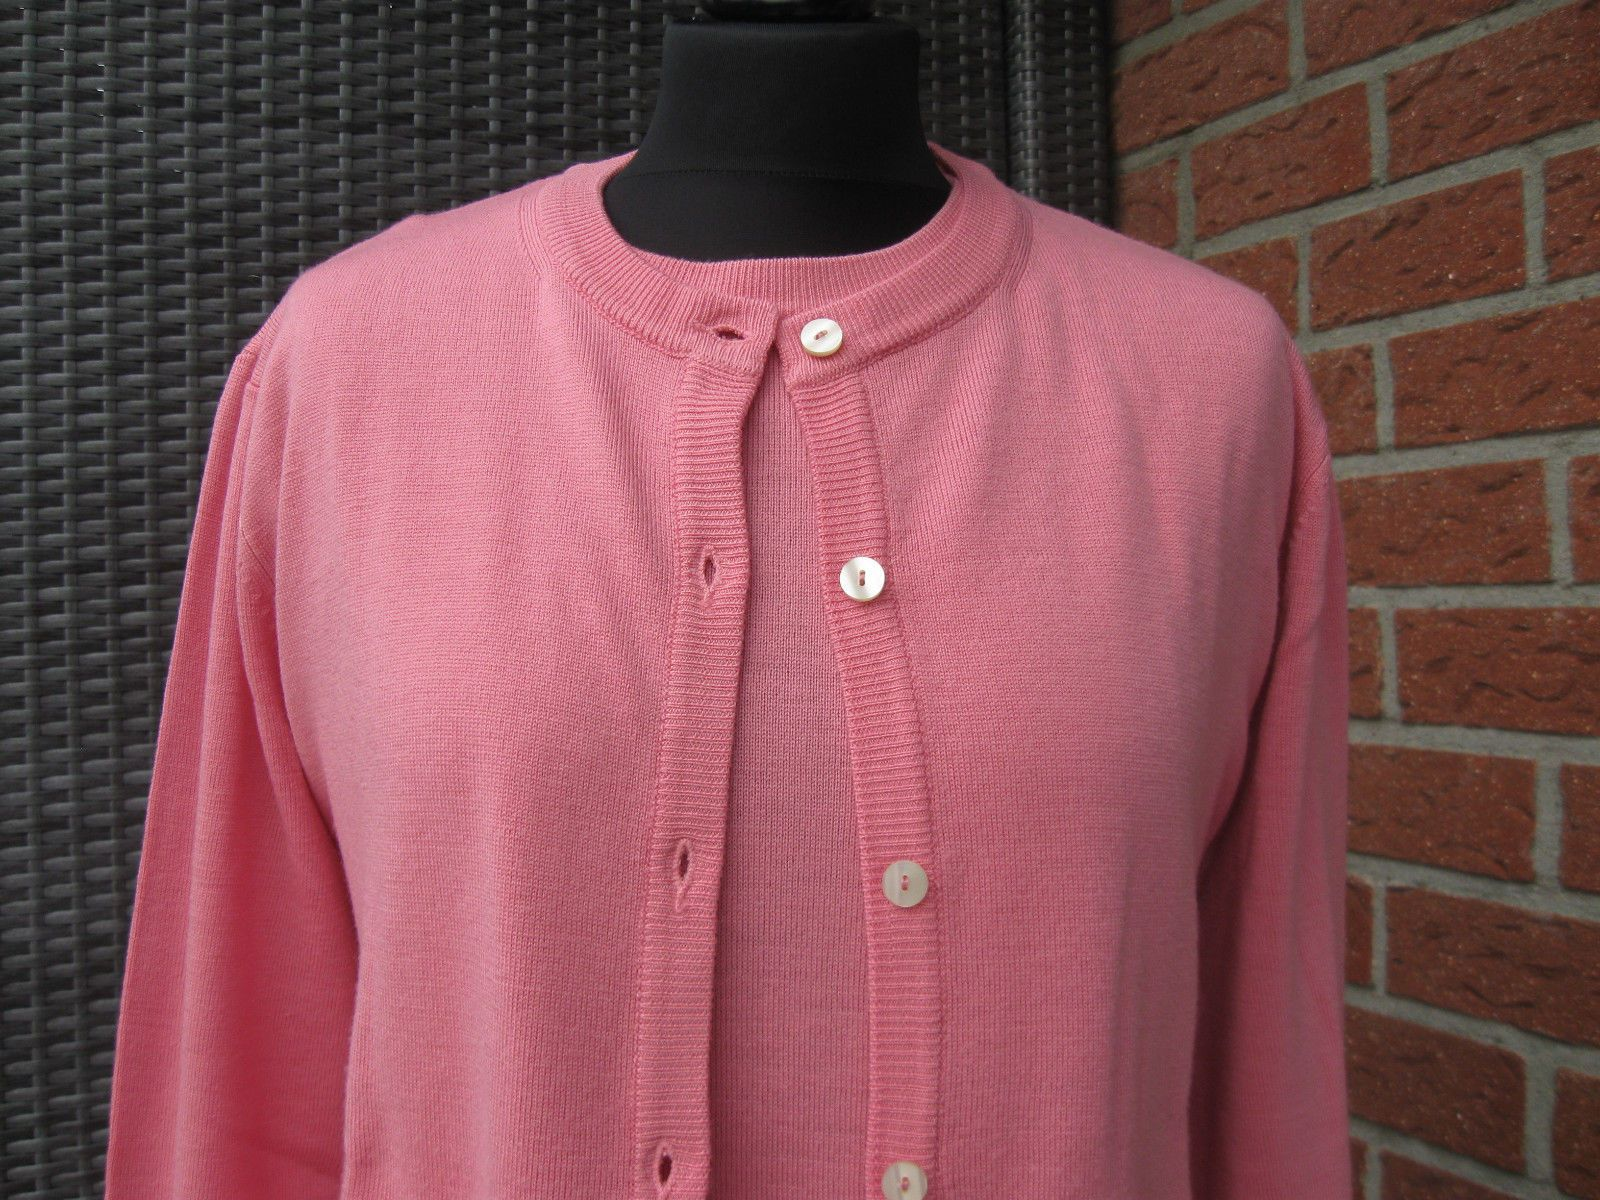 Peter Hahn Twinset Strickjacke+ Pullover Gr. 46 pure